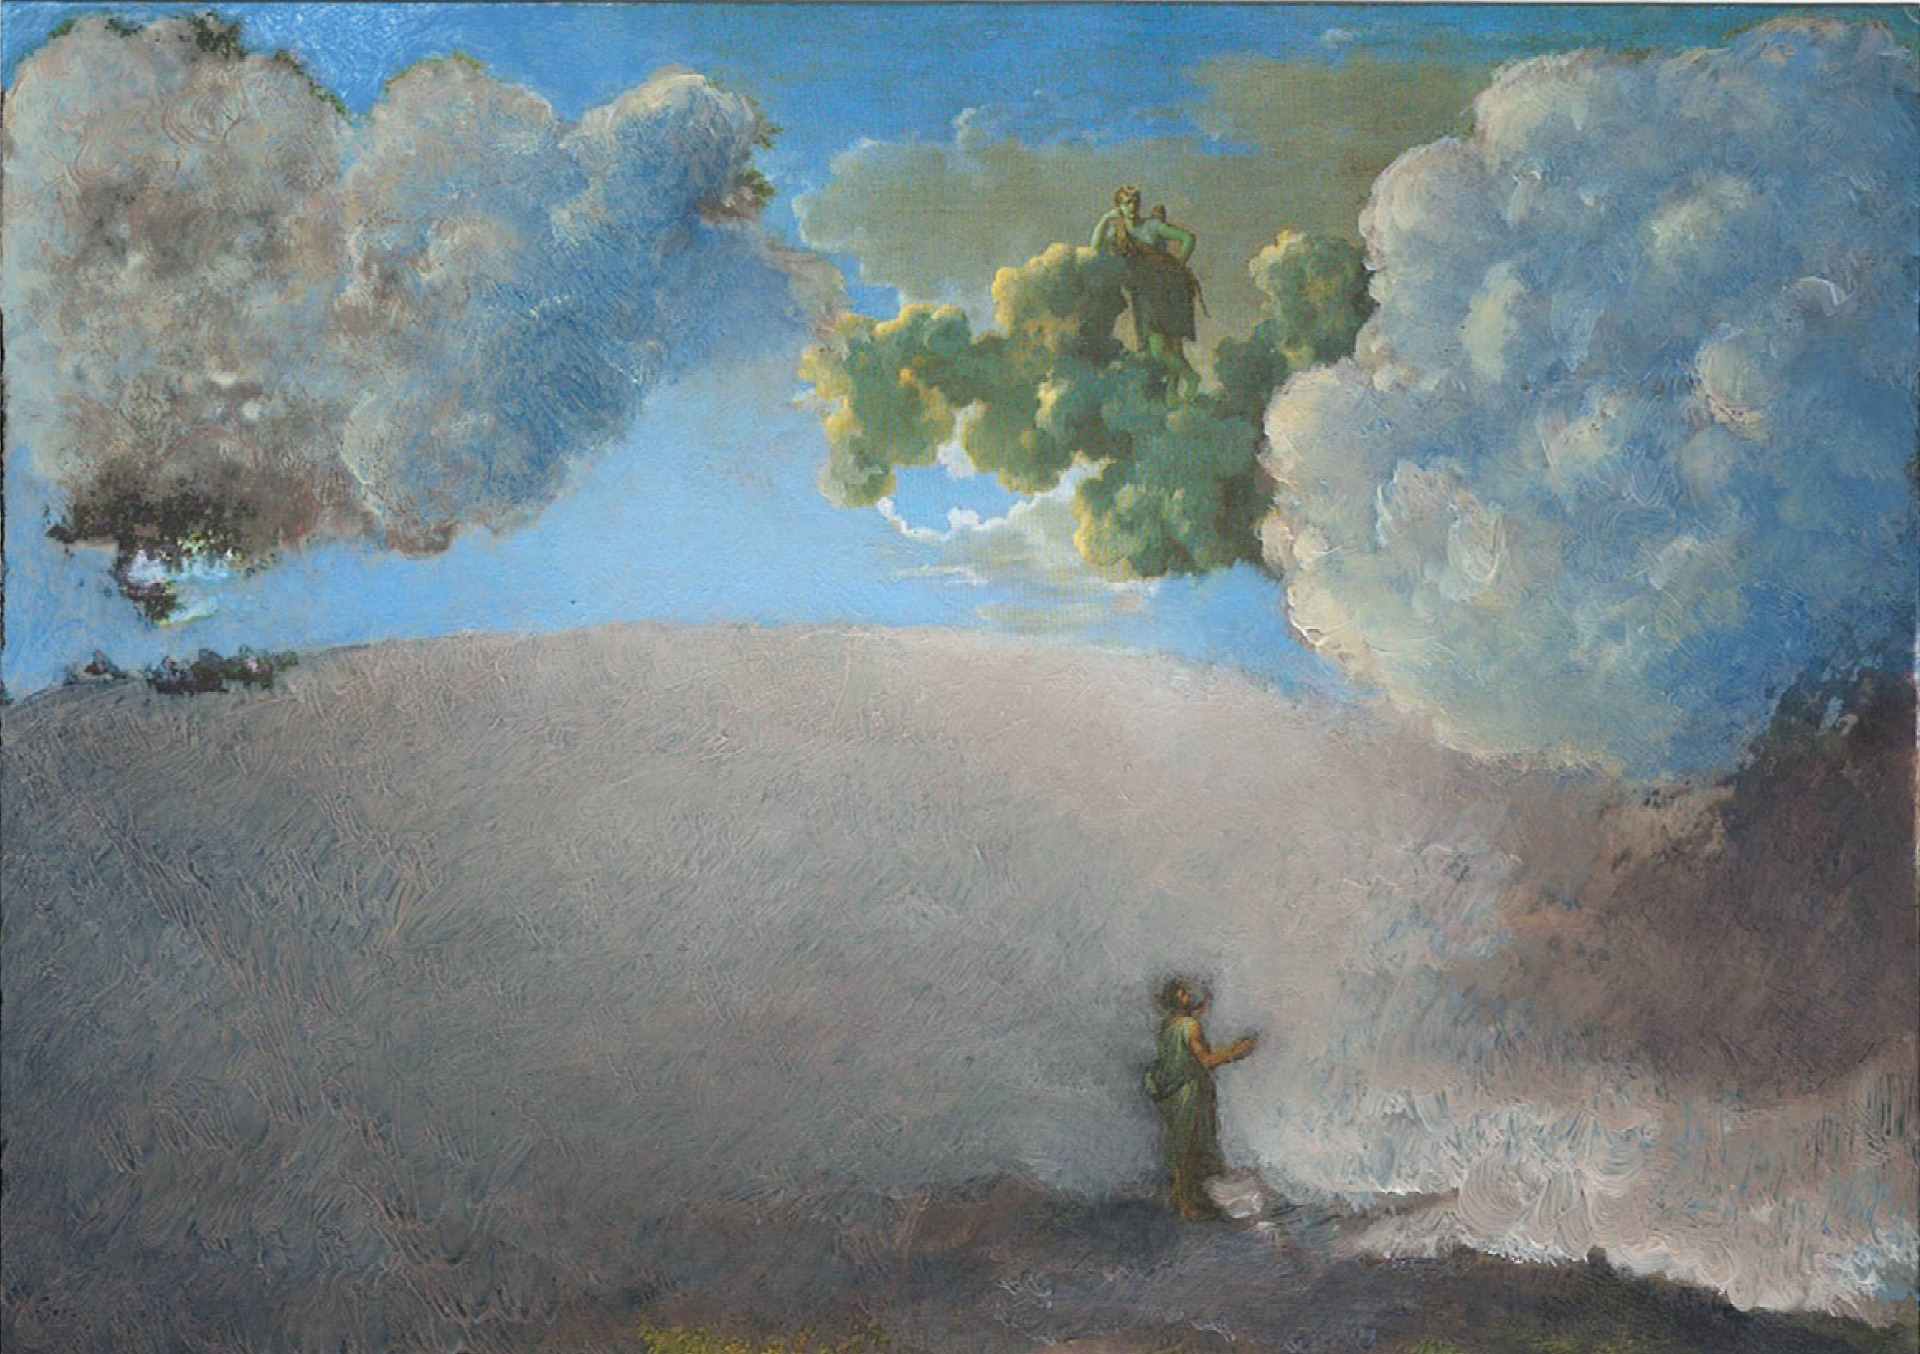 Blind Orion Searching for the Sun, Poussin, 1658, 2012